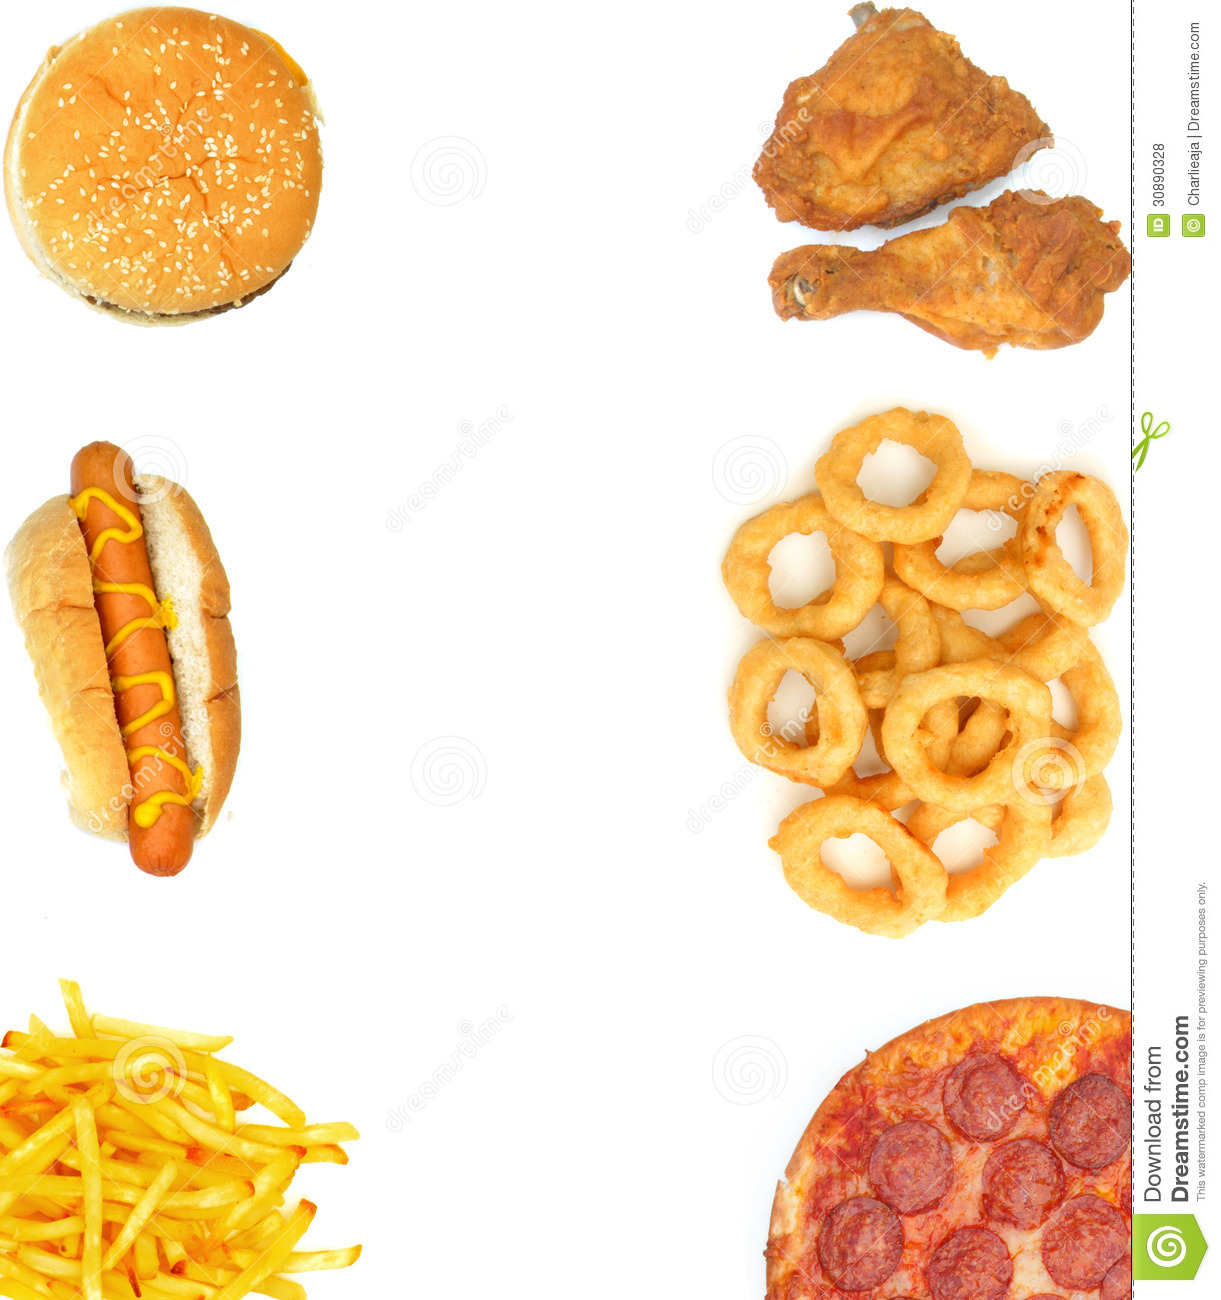 Fast Food Background Royalty Free Stock Photos - Image: 30890328